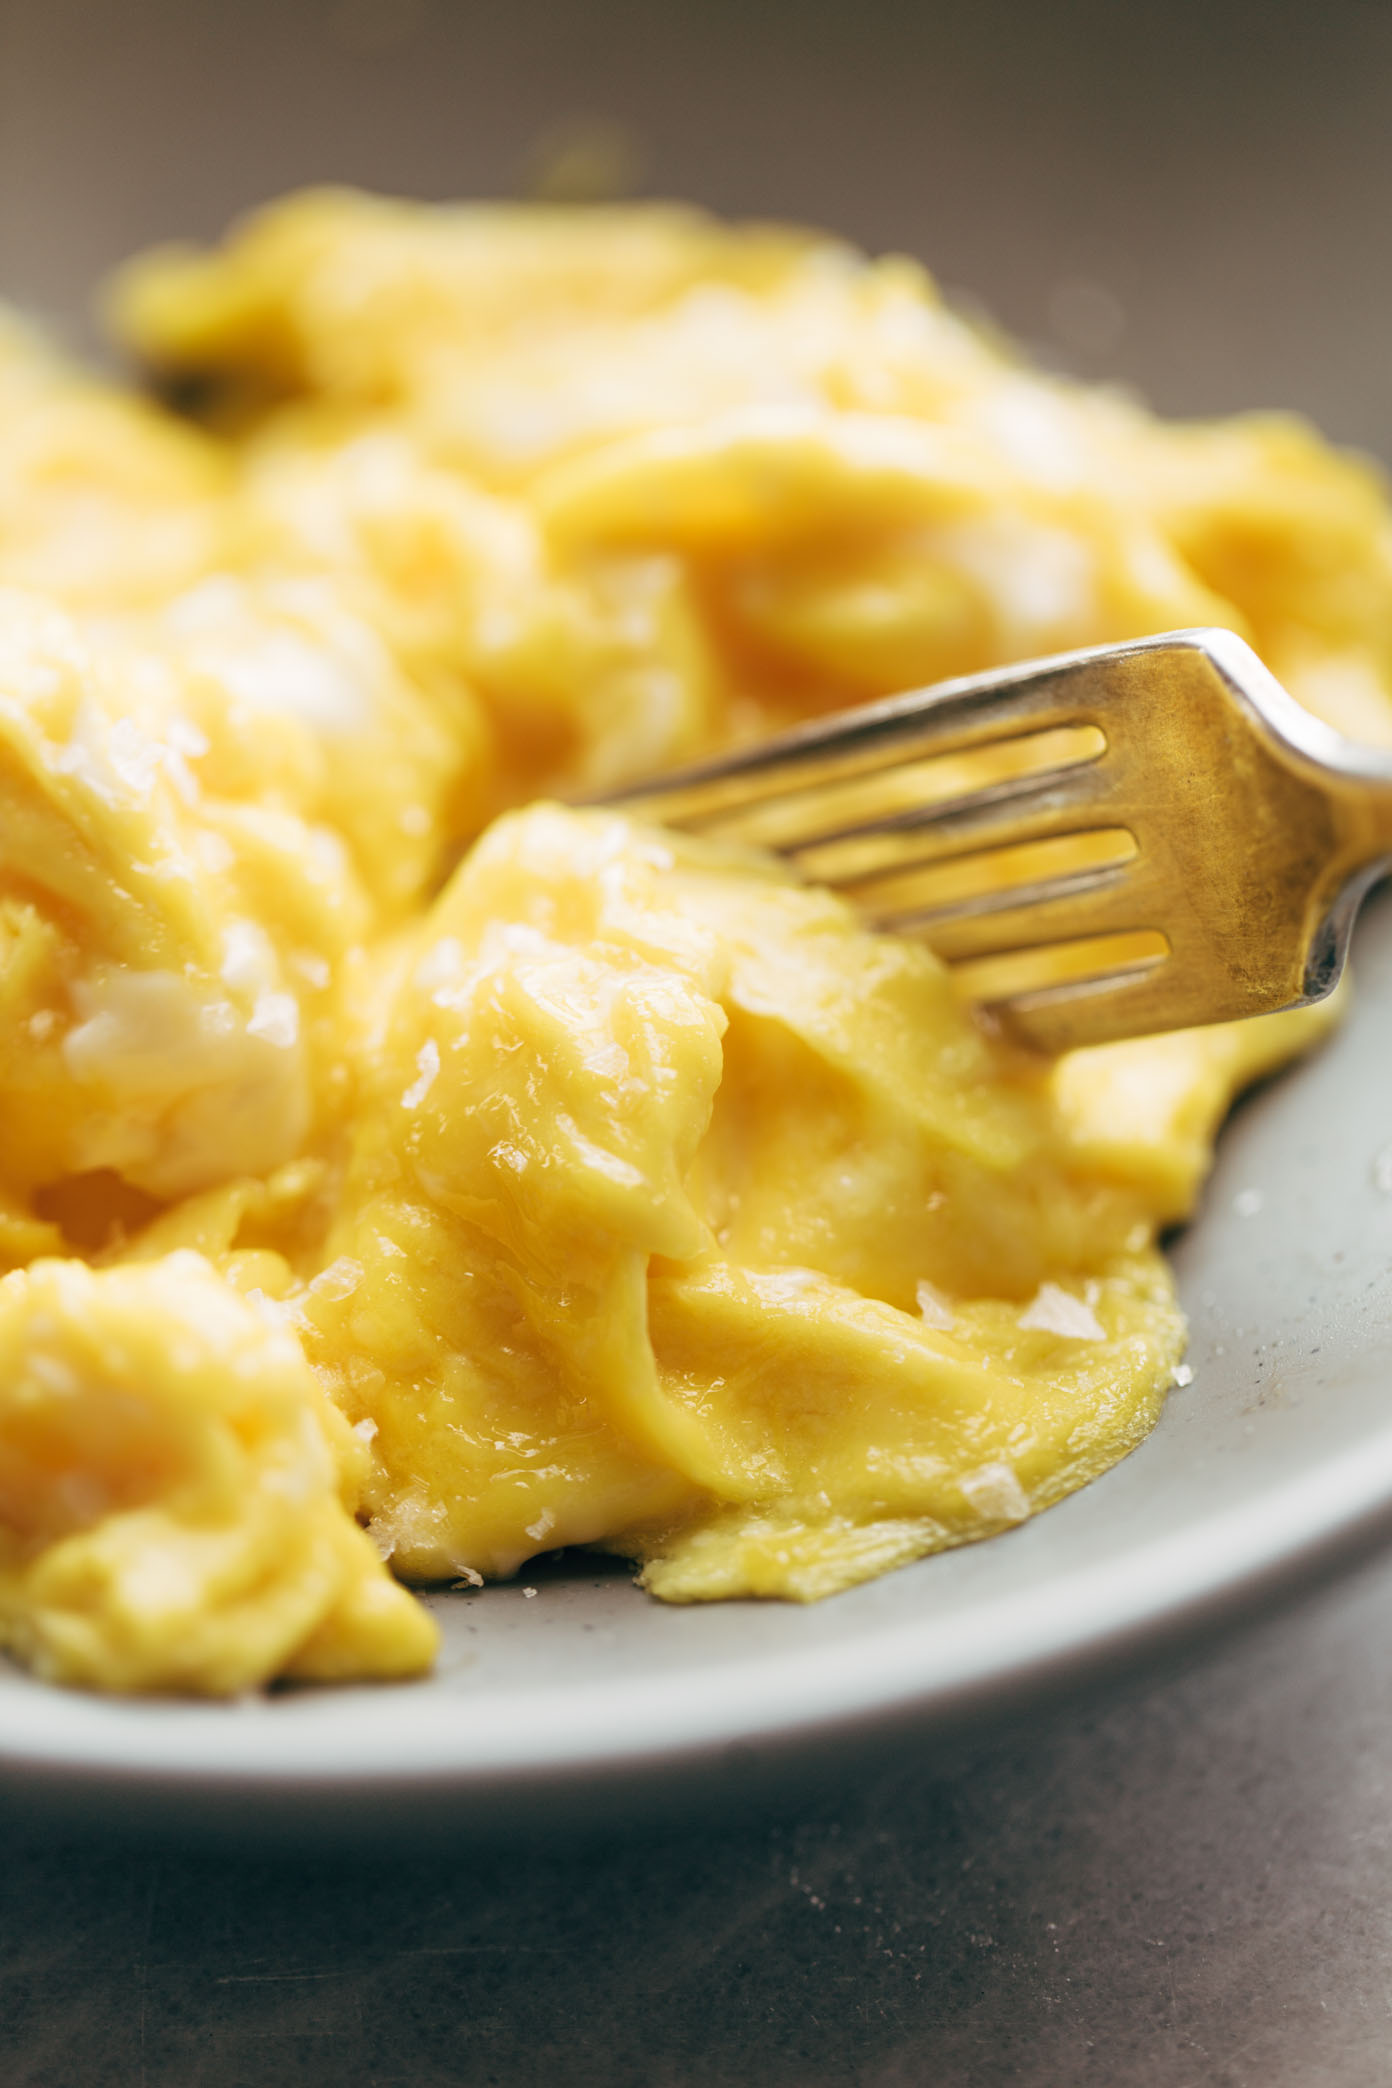 The absolute best soft scrambled eggs of my life! No strange ingredients or methods - just five quick and easy secrets to the best scrambled eggs of your life. | pinchofyum.com